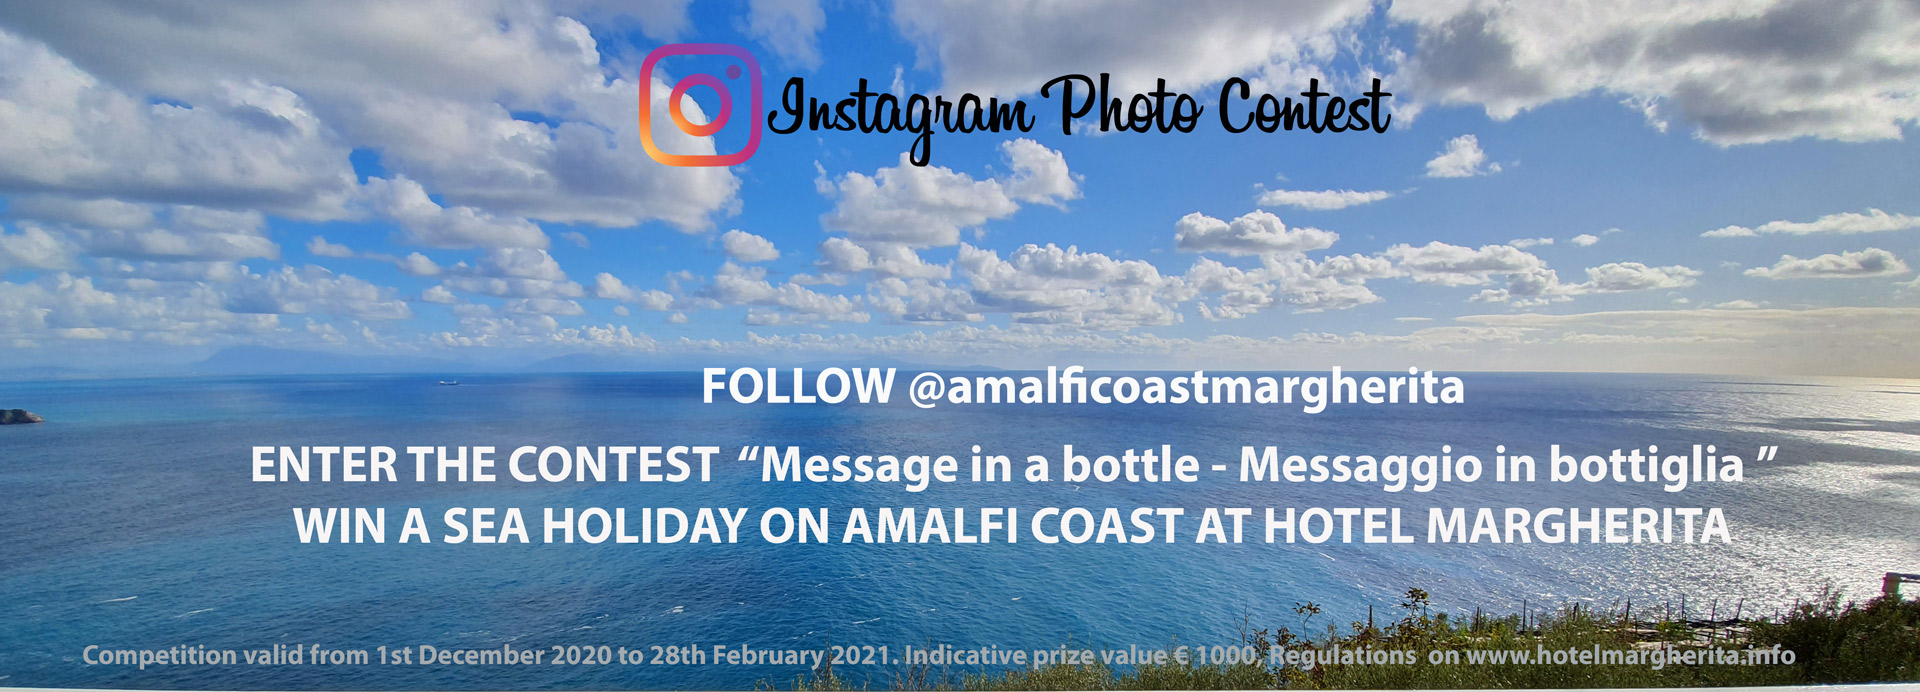 Instagram-Contest-Win-Sea-Holiday-Amalfi-Coast